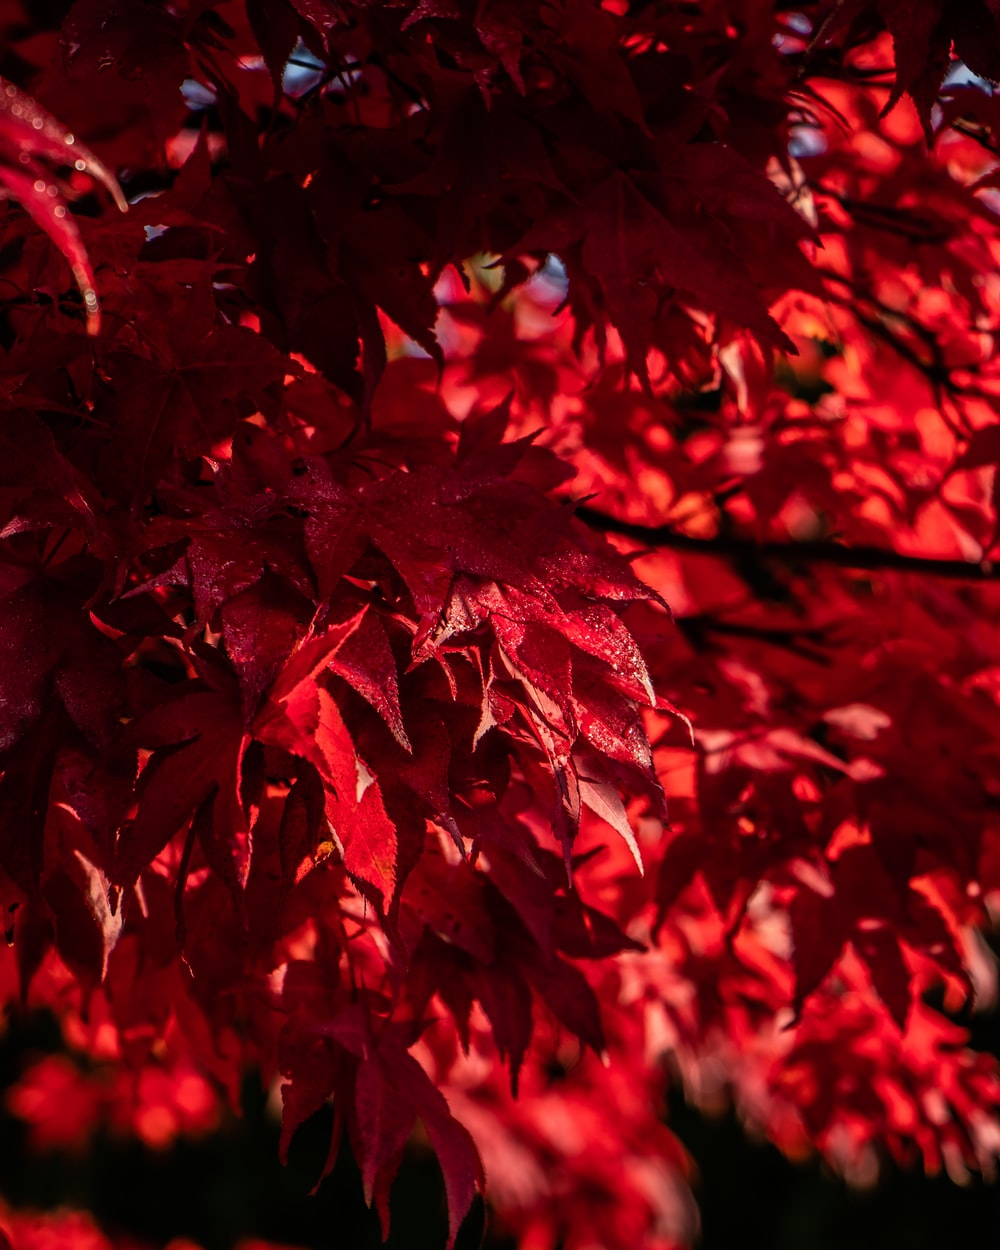 red leaves in close up photography